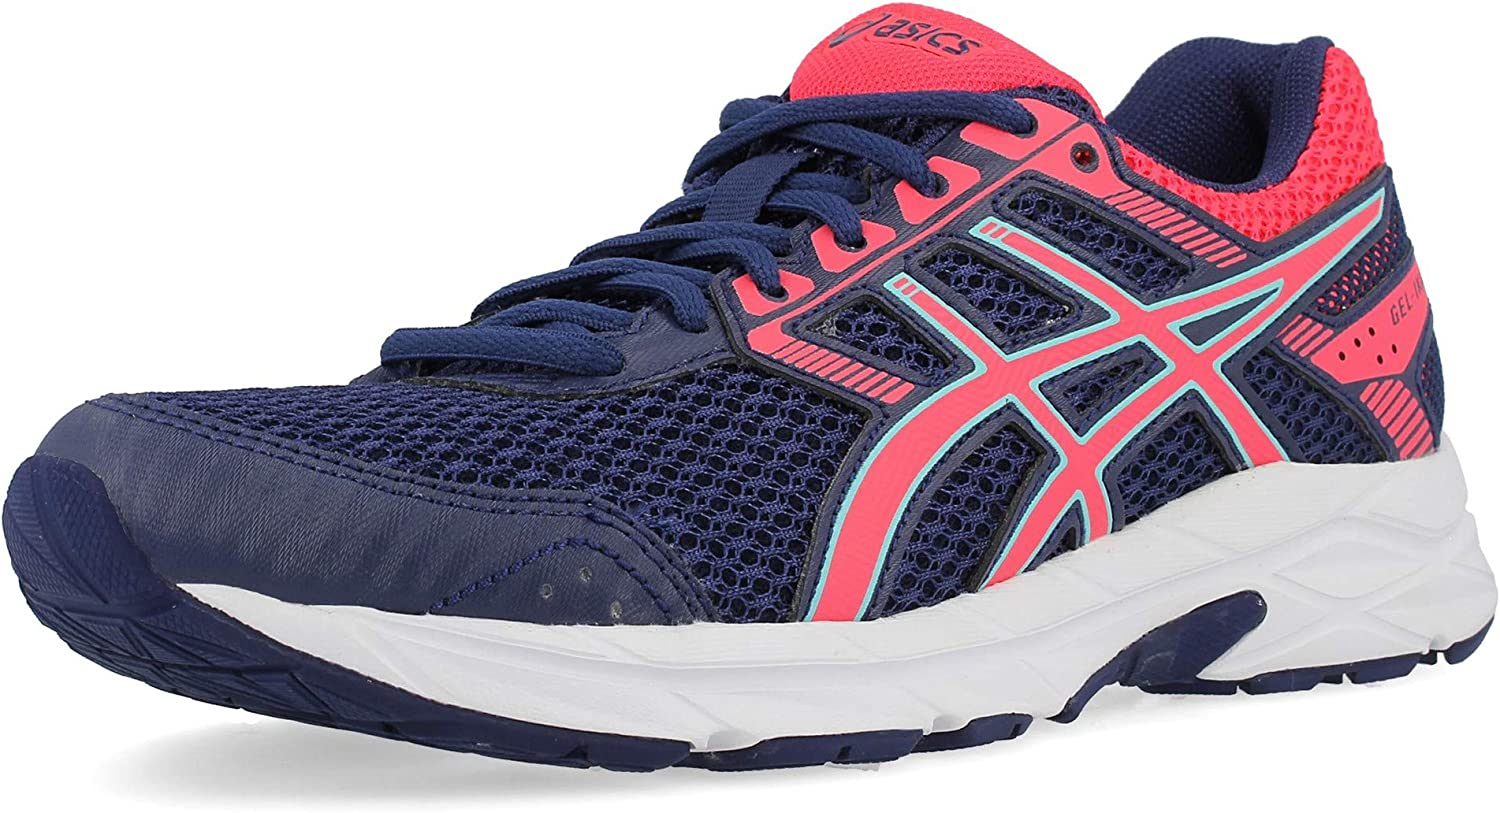 ASICS Gel-Ikaia 6 Womens Zapatillas para Correr - 37.5: Amazon.es: Zapatos y complementos